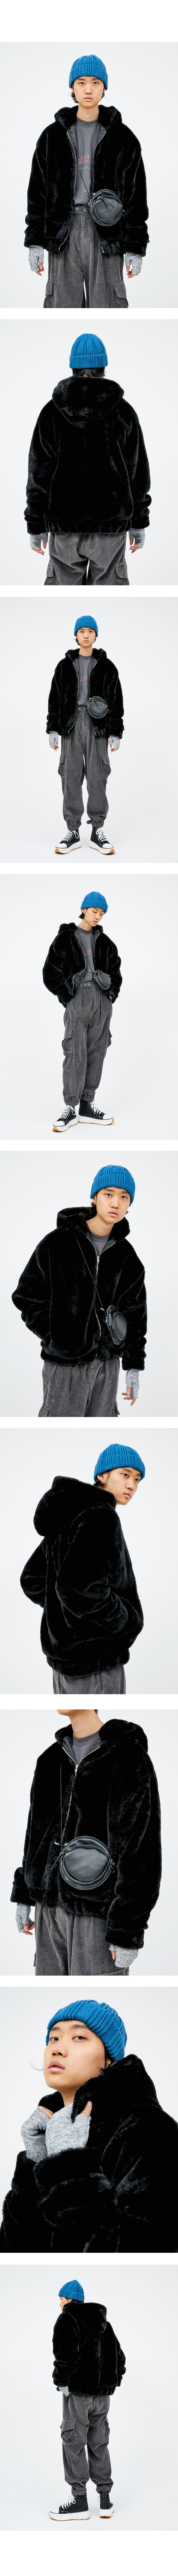 furry hood zip-up jacket - men